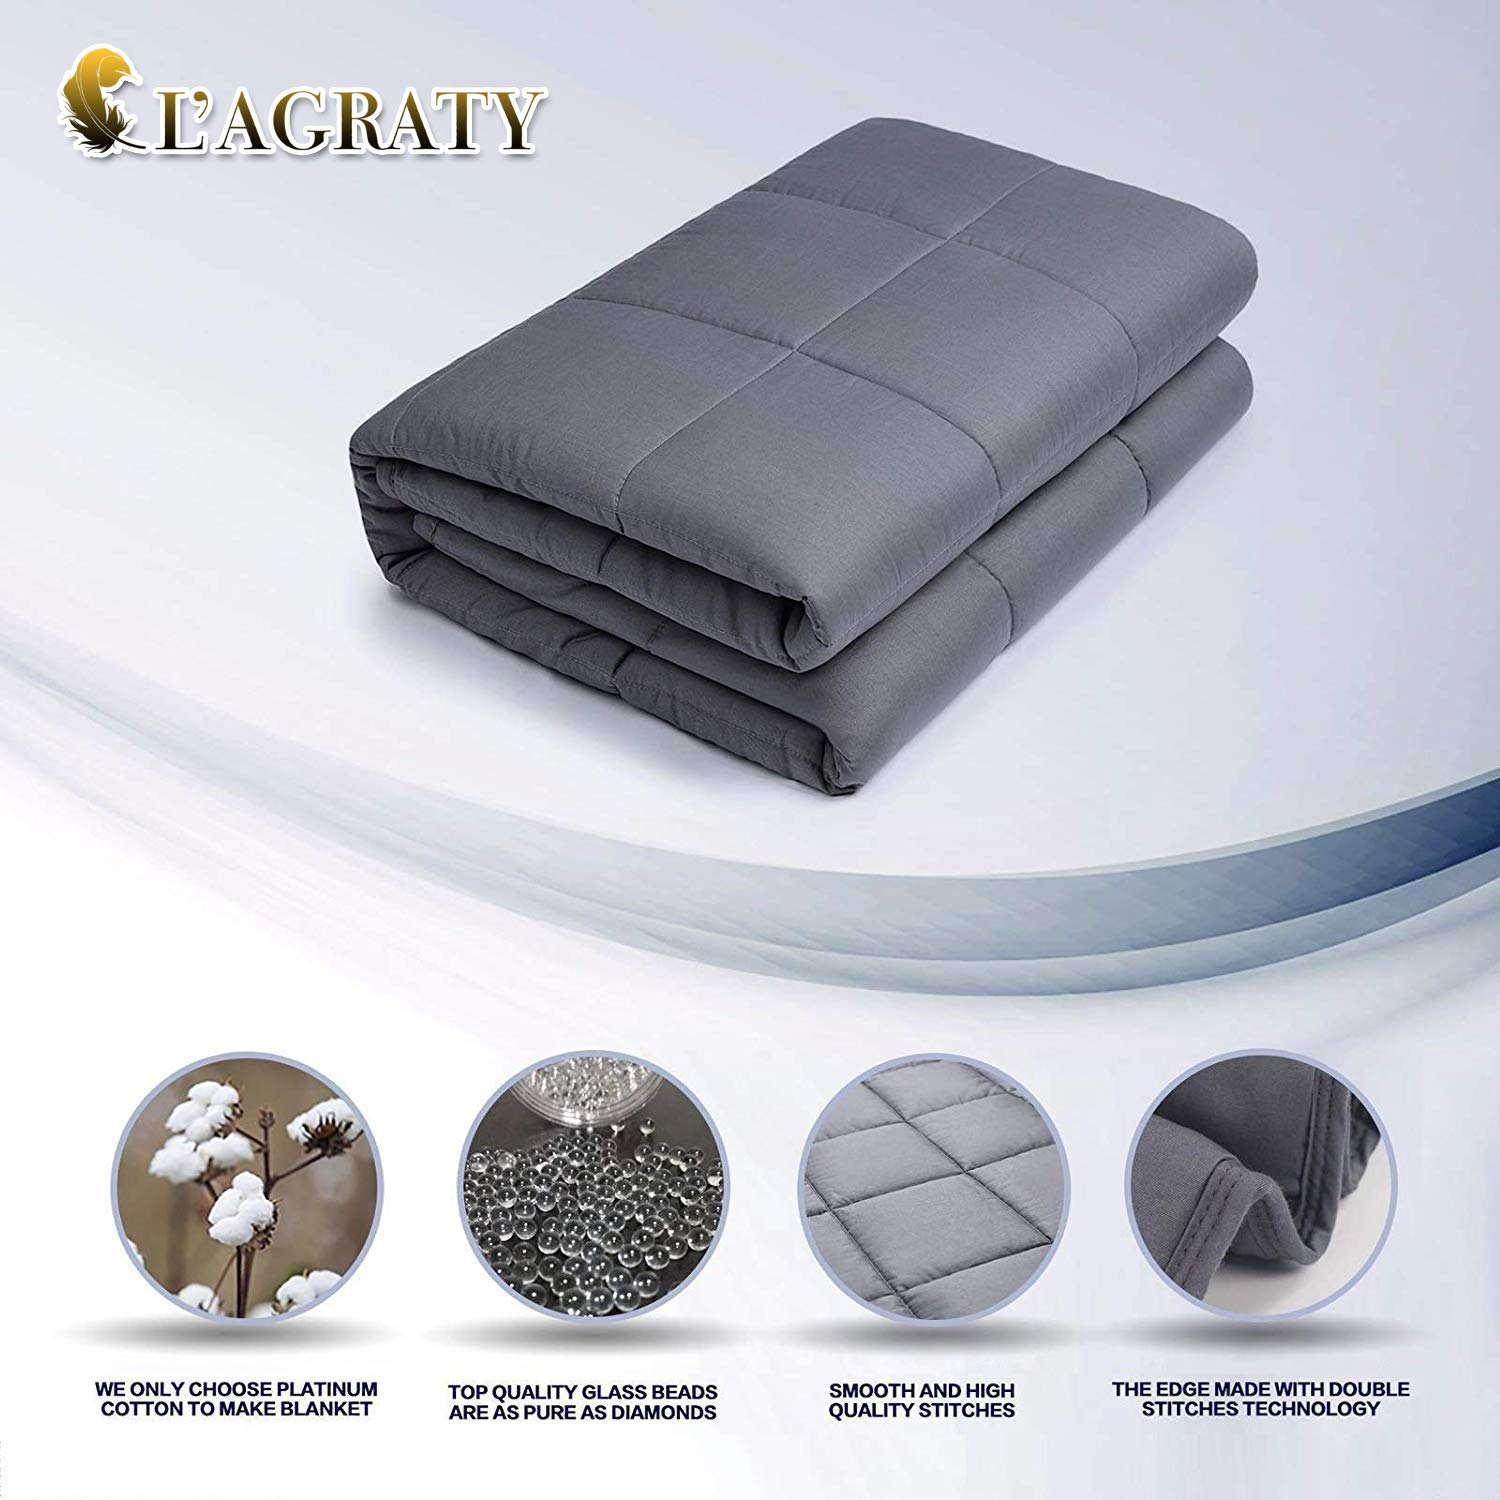 L'AGRATY Weighted Blanket for Adults (15 lbs, 60''x80'', Queen Size)   2.0 Cooling Heavy Tranquility Blanket for Individual Between 120-180 lbs   100% Natural Cotton   New Technology by L'AGRATY